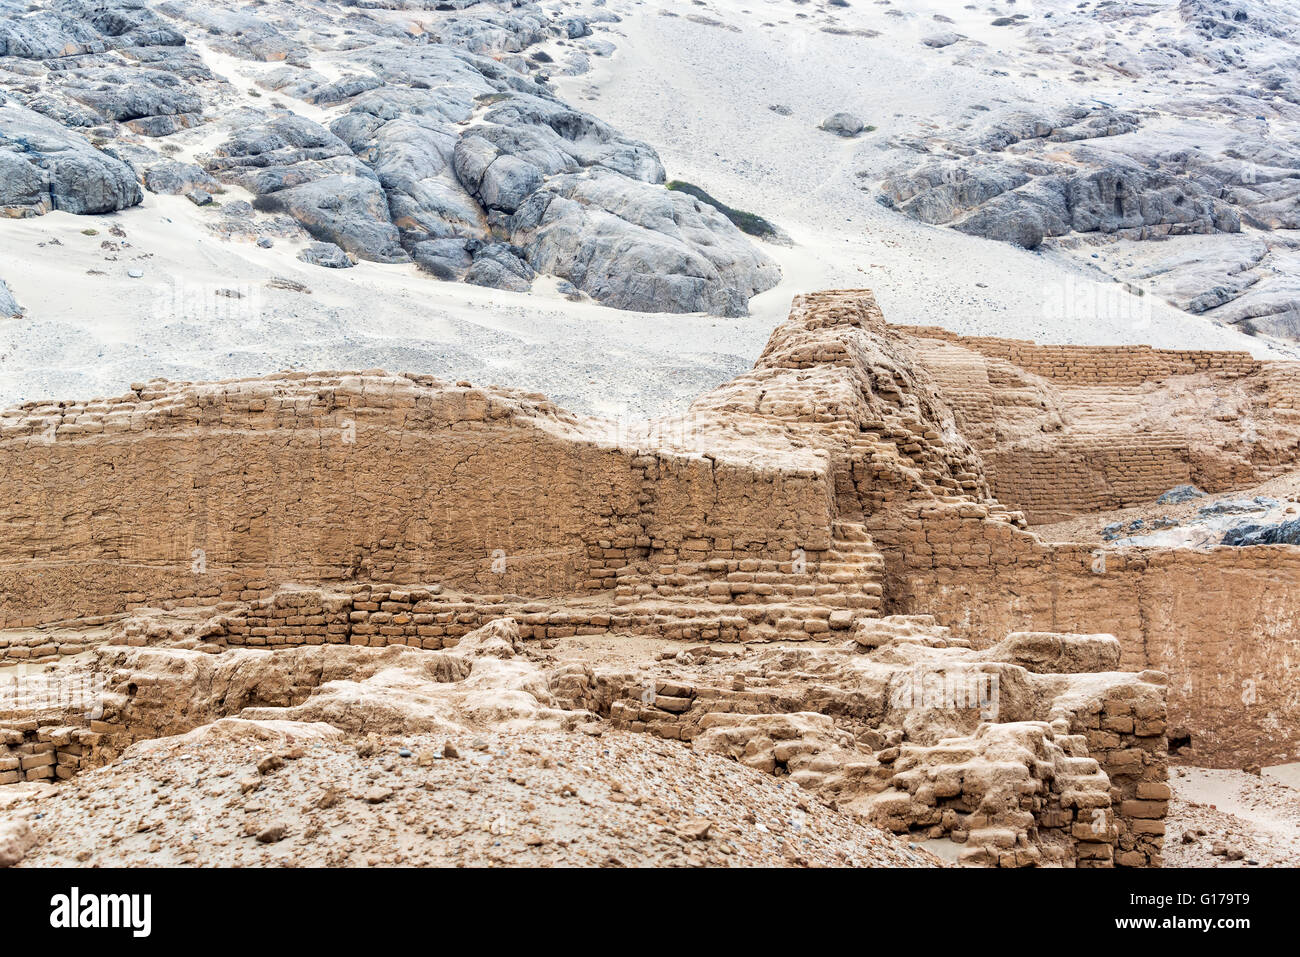 Ruins of the ancient Huaca de la Luna in Trujillo, Peru - Stock Image